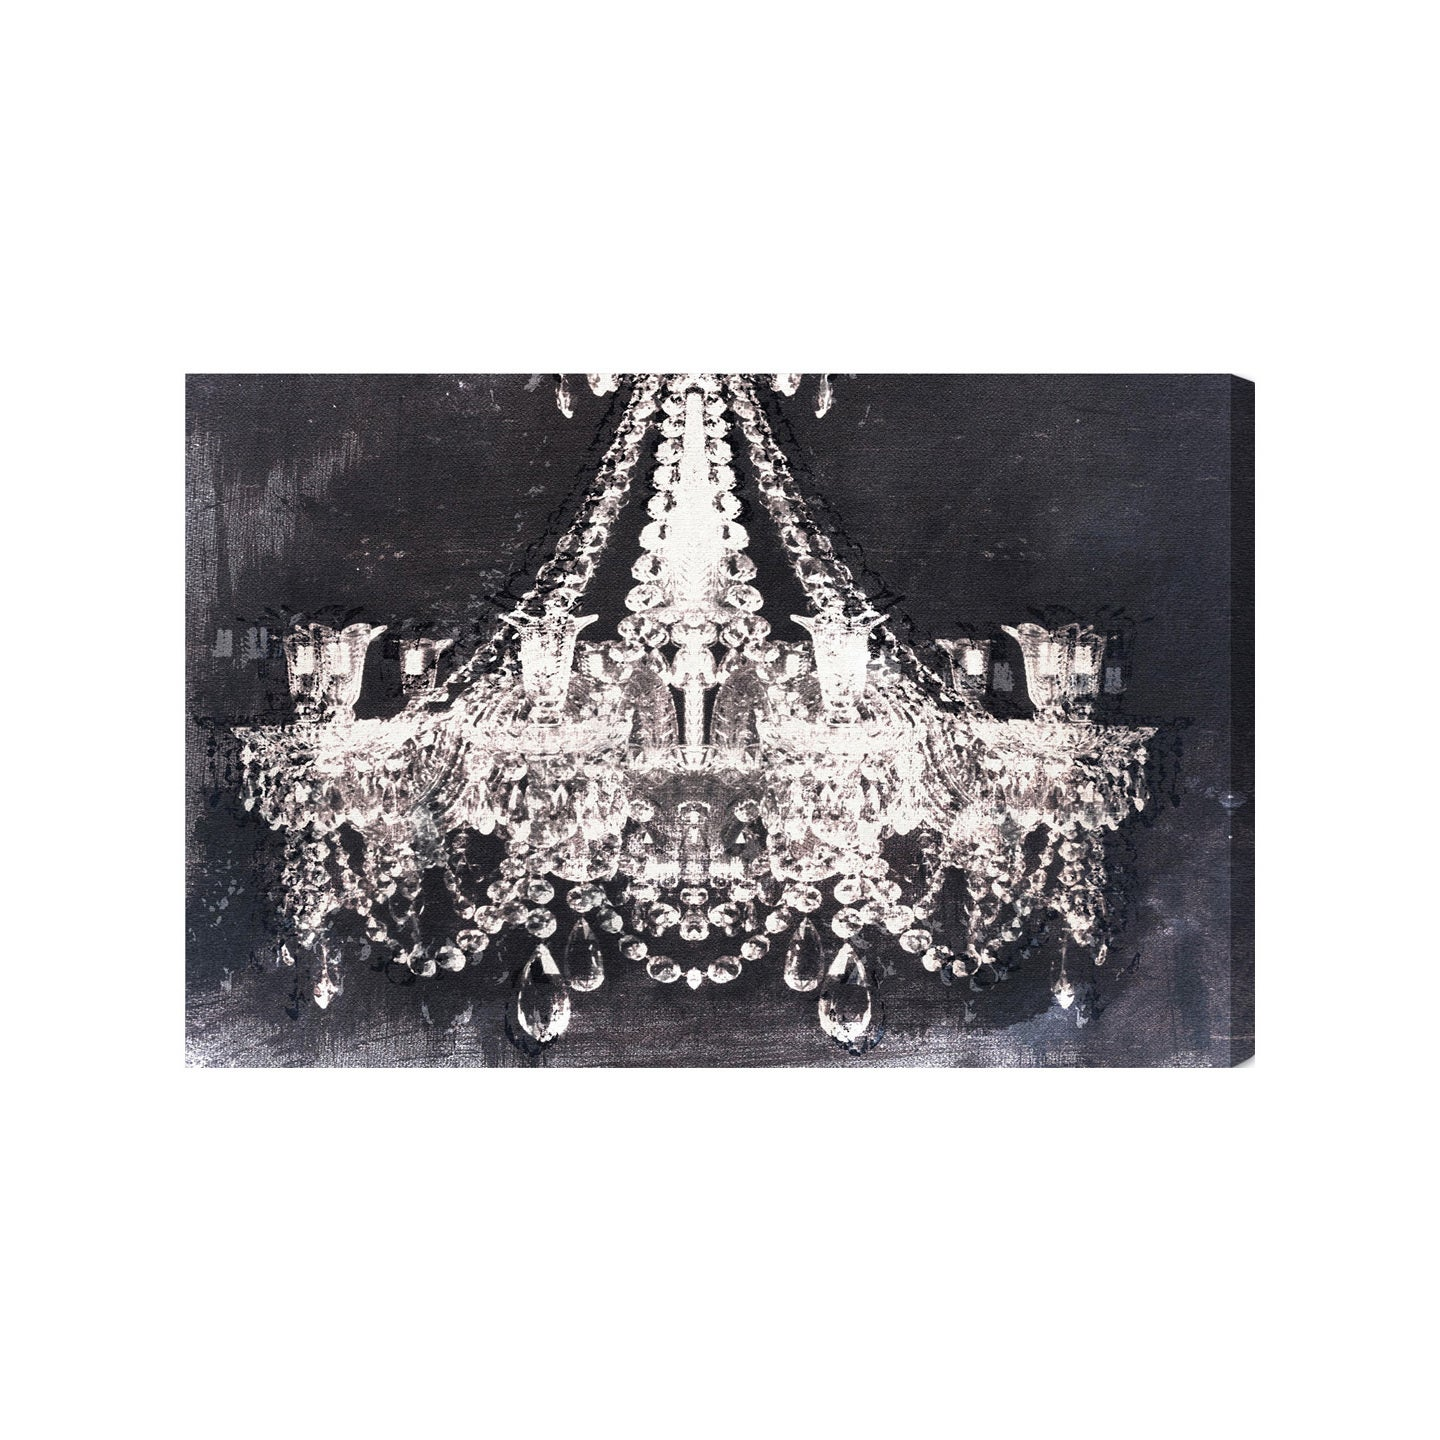 Oliver Gal Dramatic Entrance Night Canvas Art Black White